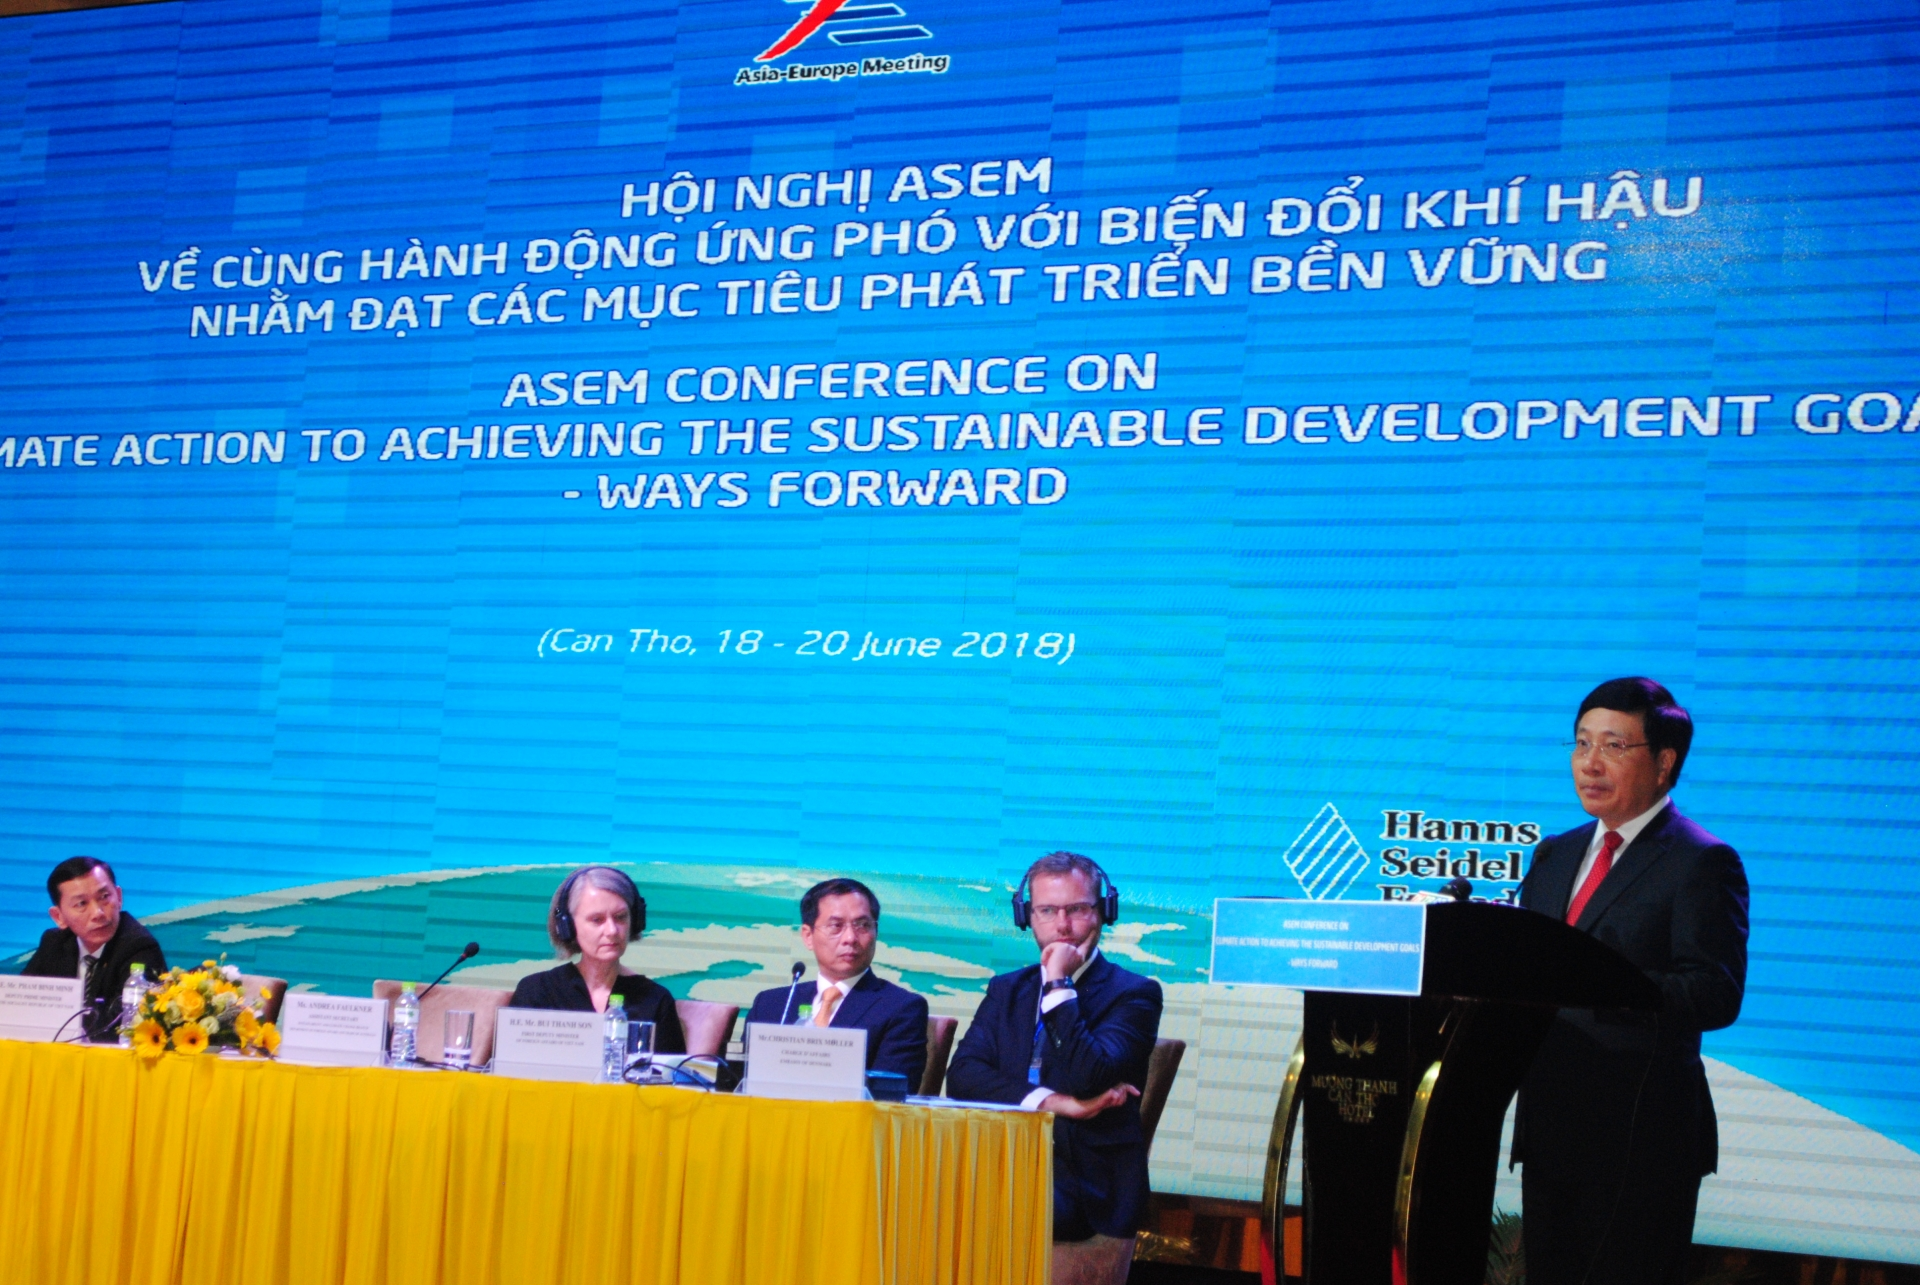 ASEM on climate action to achieving the sustainable development goals